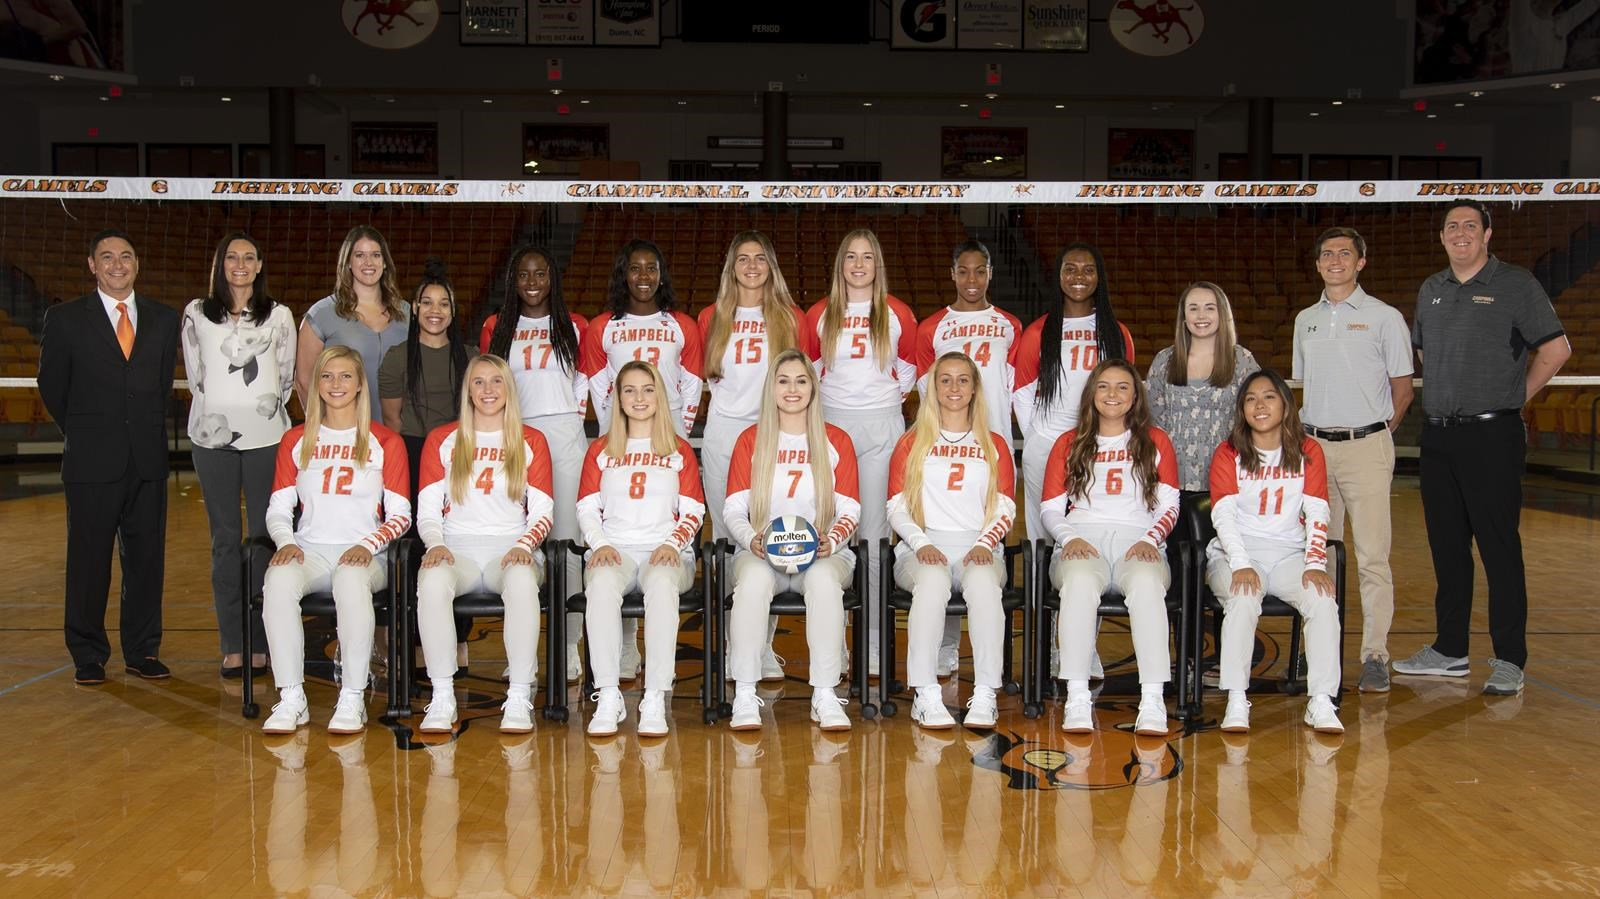 2019 Volleyball Roster Campbell University